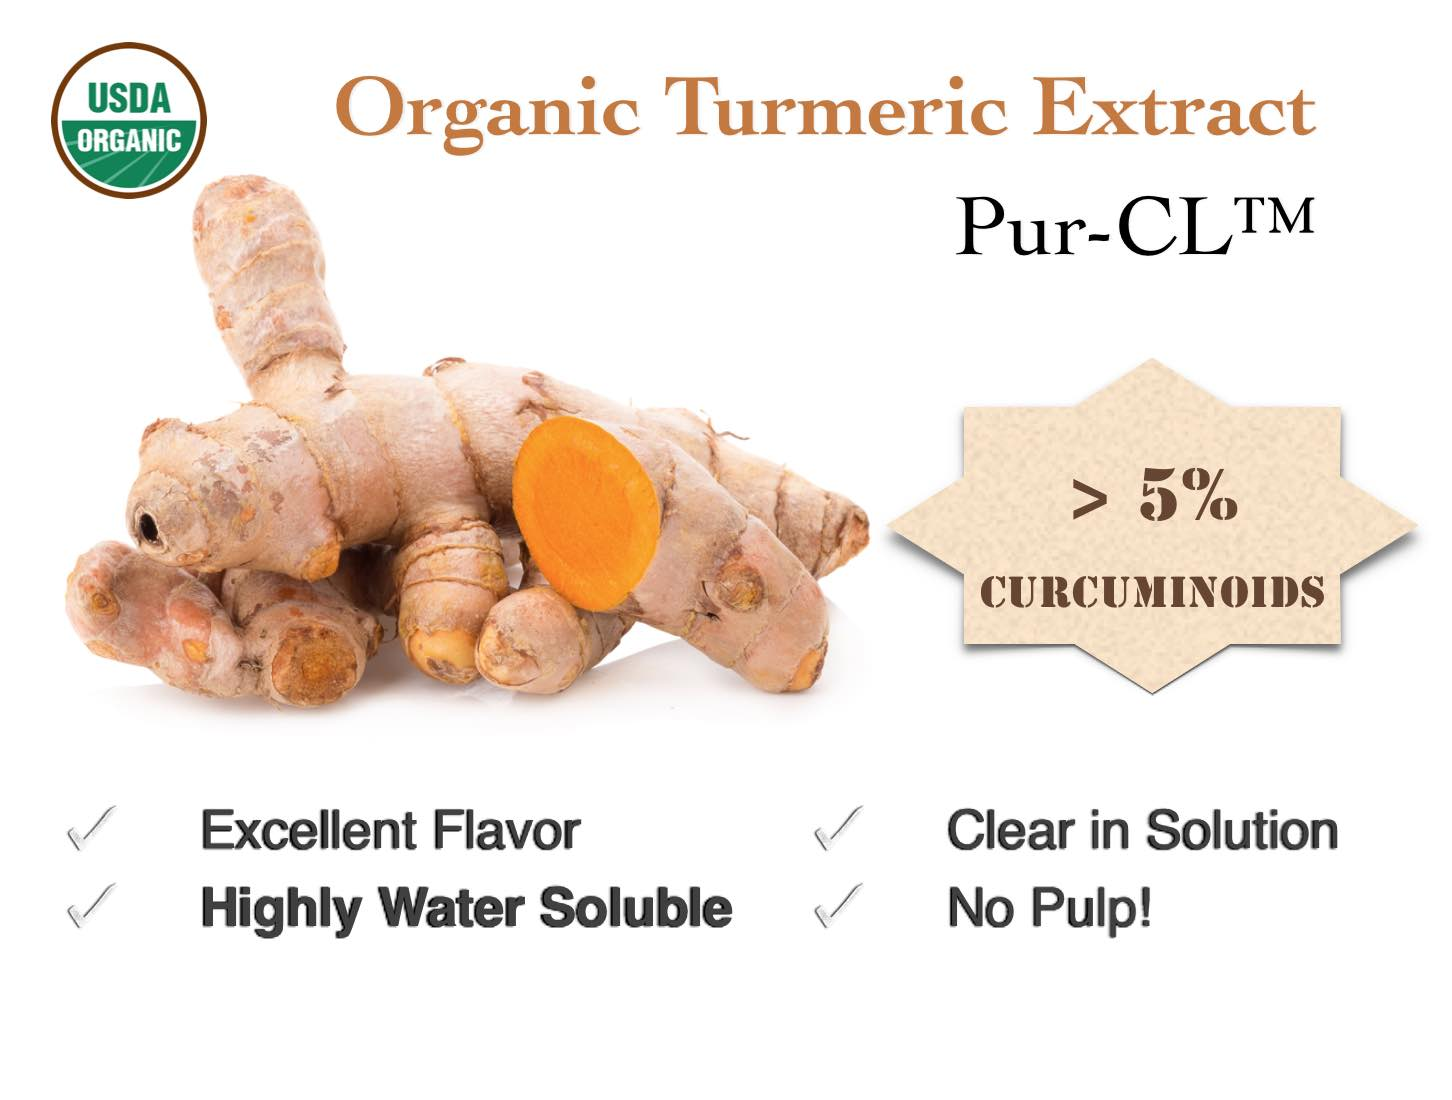 Organic Turmeric Extract for Beverages